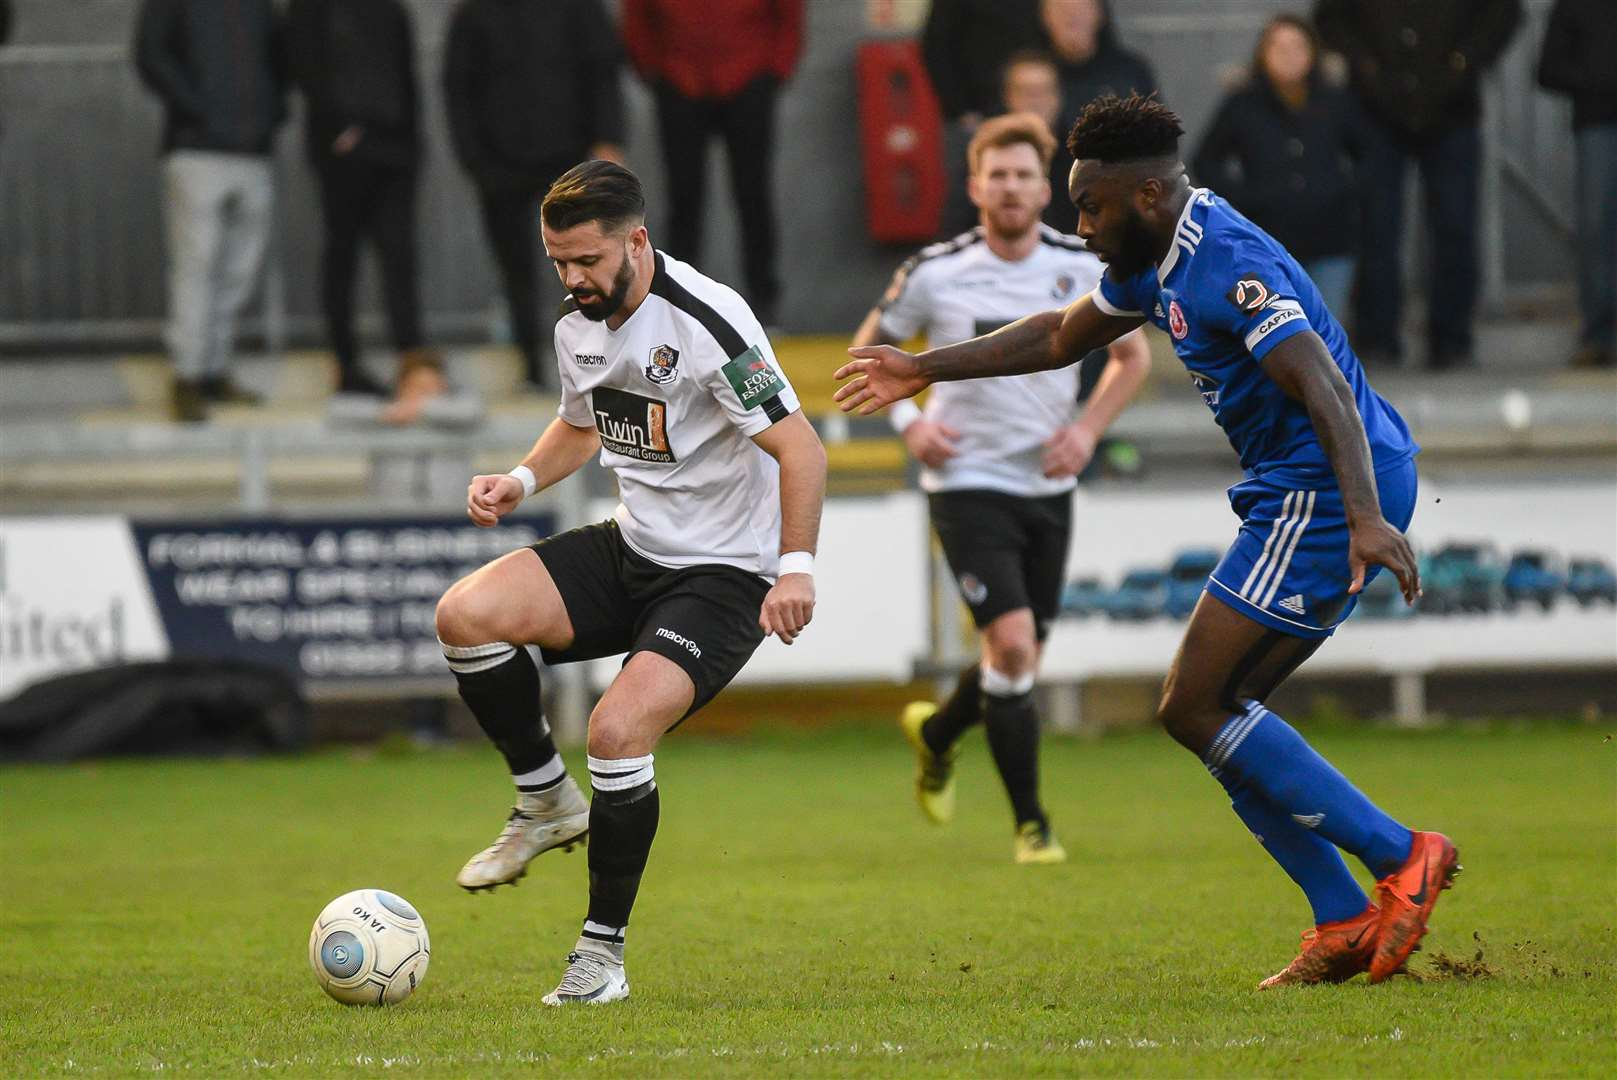 Dartford's Ben Greenhalgh on the ball against Welling Picture: Alan Langley